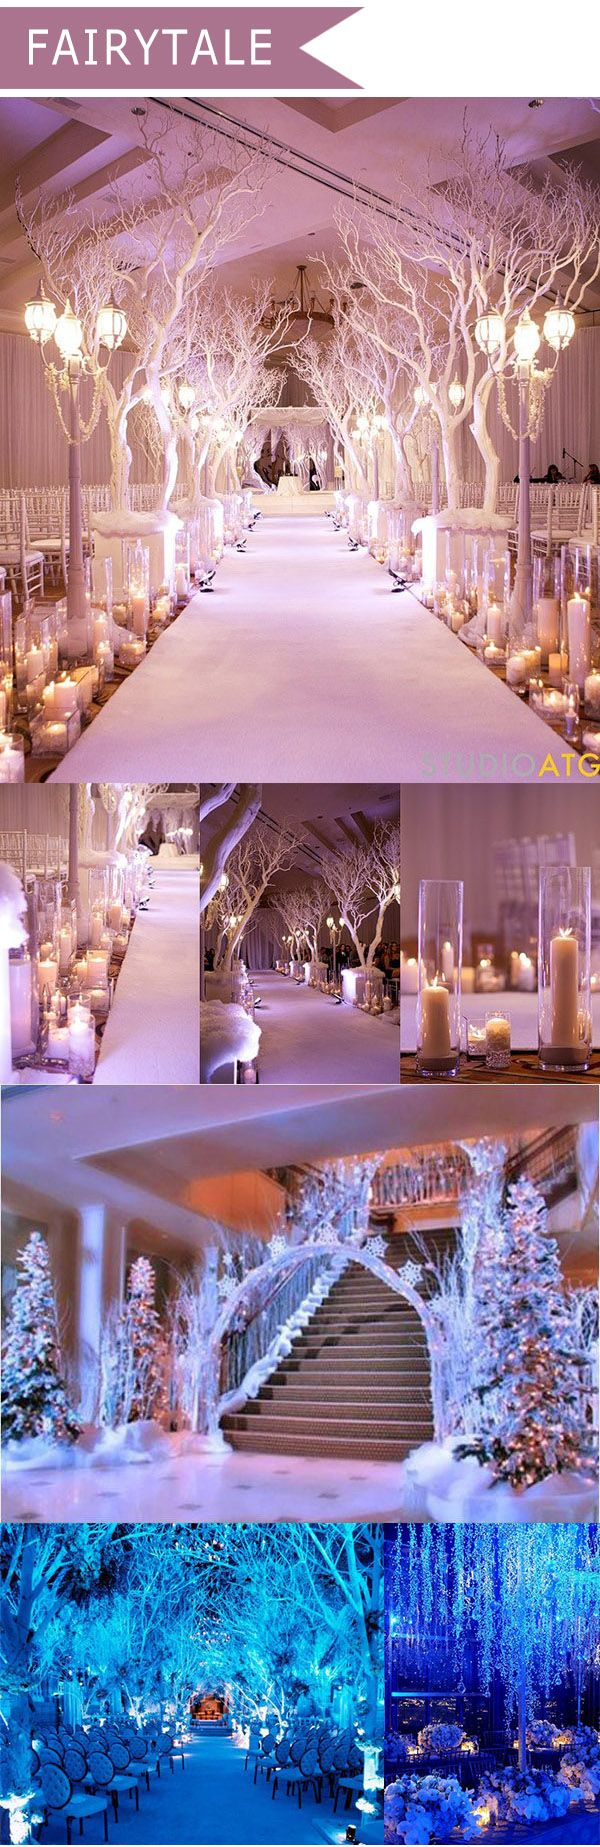 Best 25 winter wedding decorations ideas on pinterest winter fairytale themed wedding decoration ideas for 2016 trends junglespirit Images